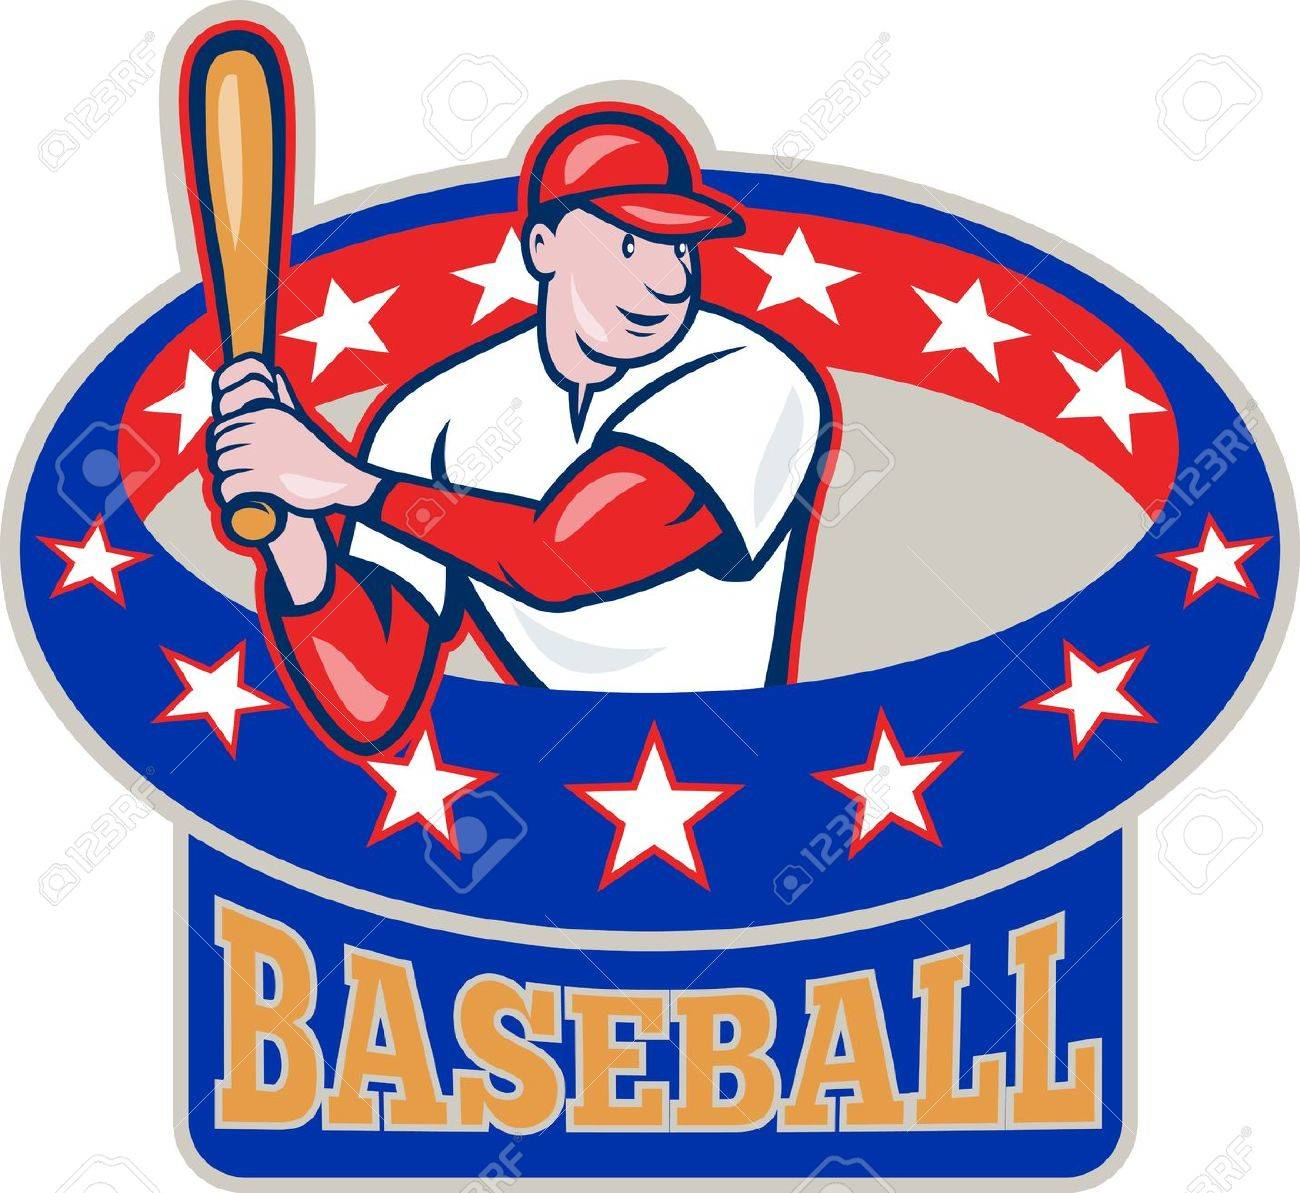 Illustration of a american baseball player batting cartoon style isolated on white with ring and stars around  and text wording baseball Stock Vector - 14629292